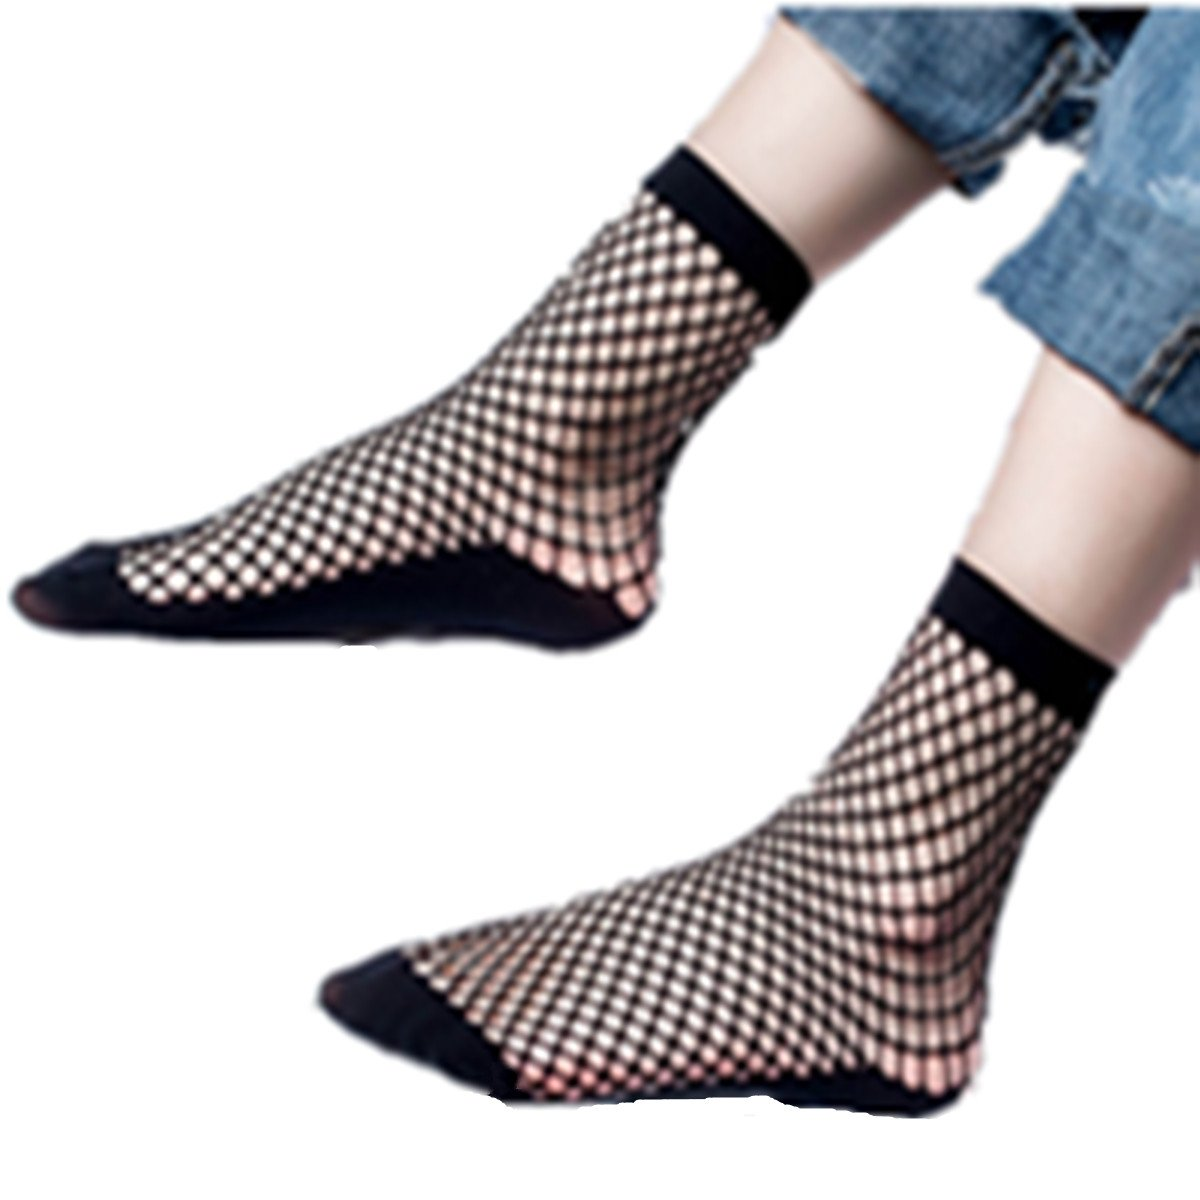 Clearance! 2 Pairs Women's Sexy Fishnet Mesh hollow Sheer Short Ankle Socks (Black)